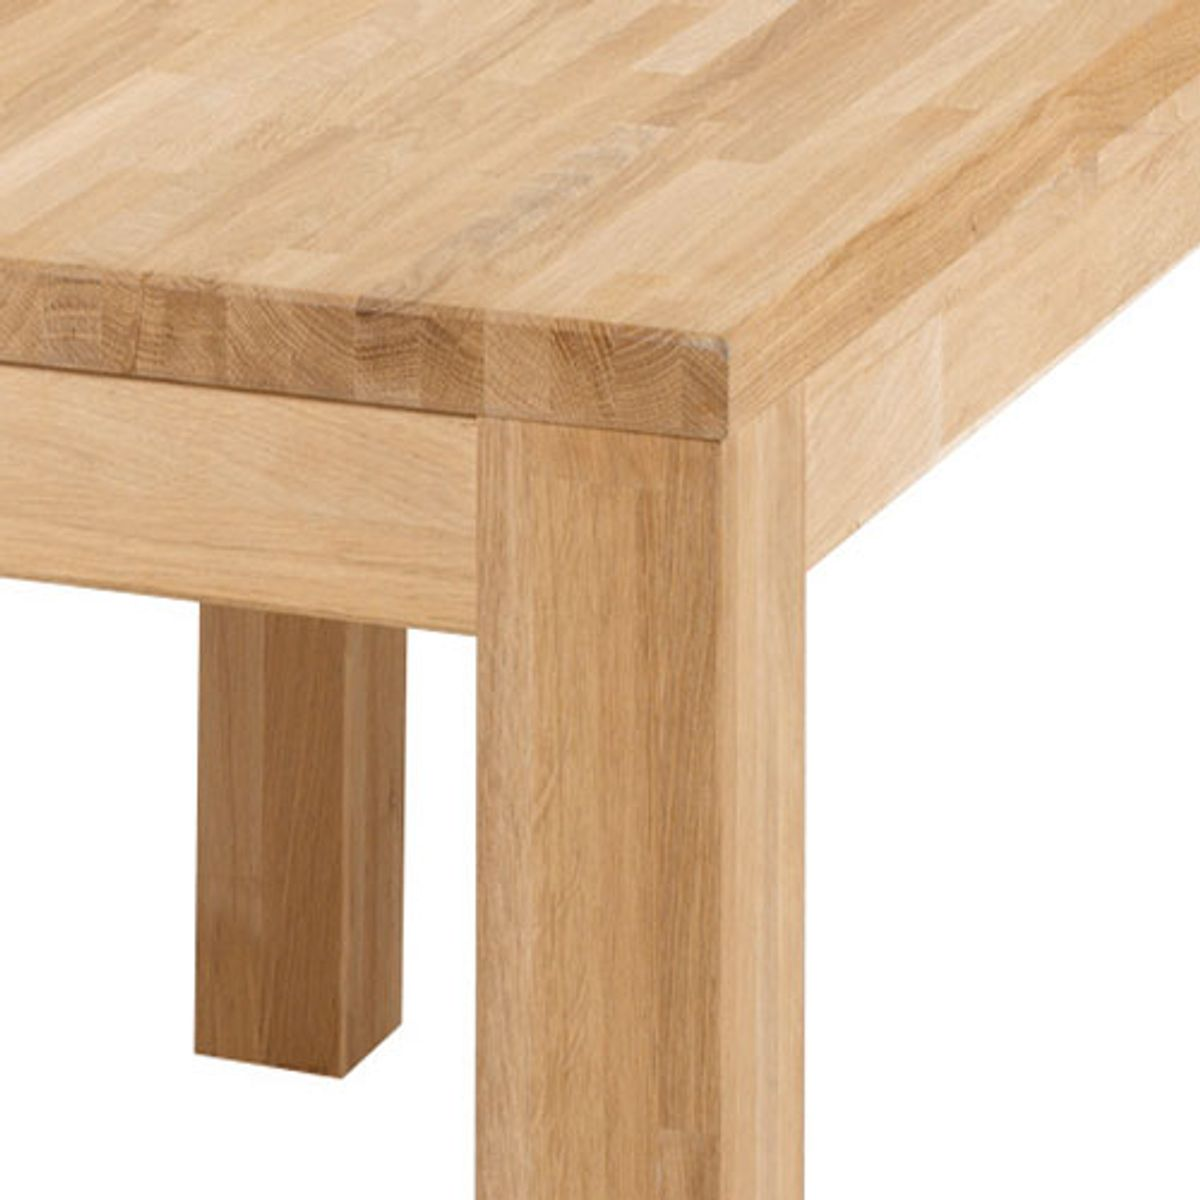 Table rectangulaire L 200 en chêne massif naturel Largo -GM